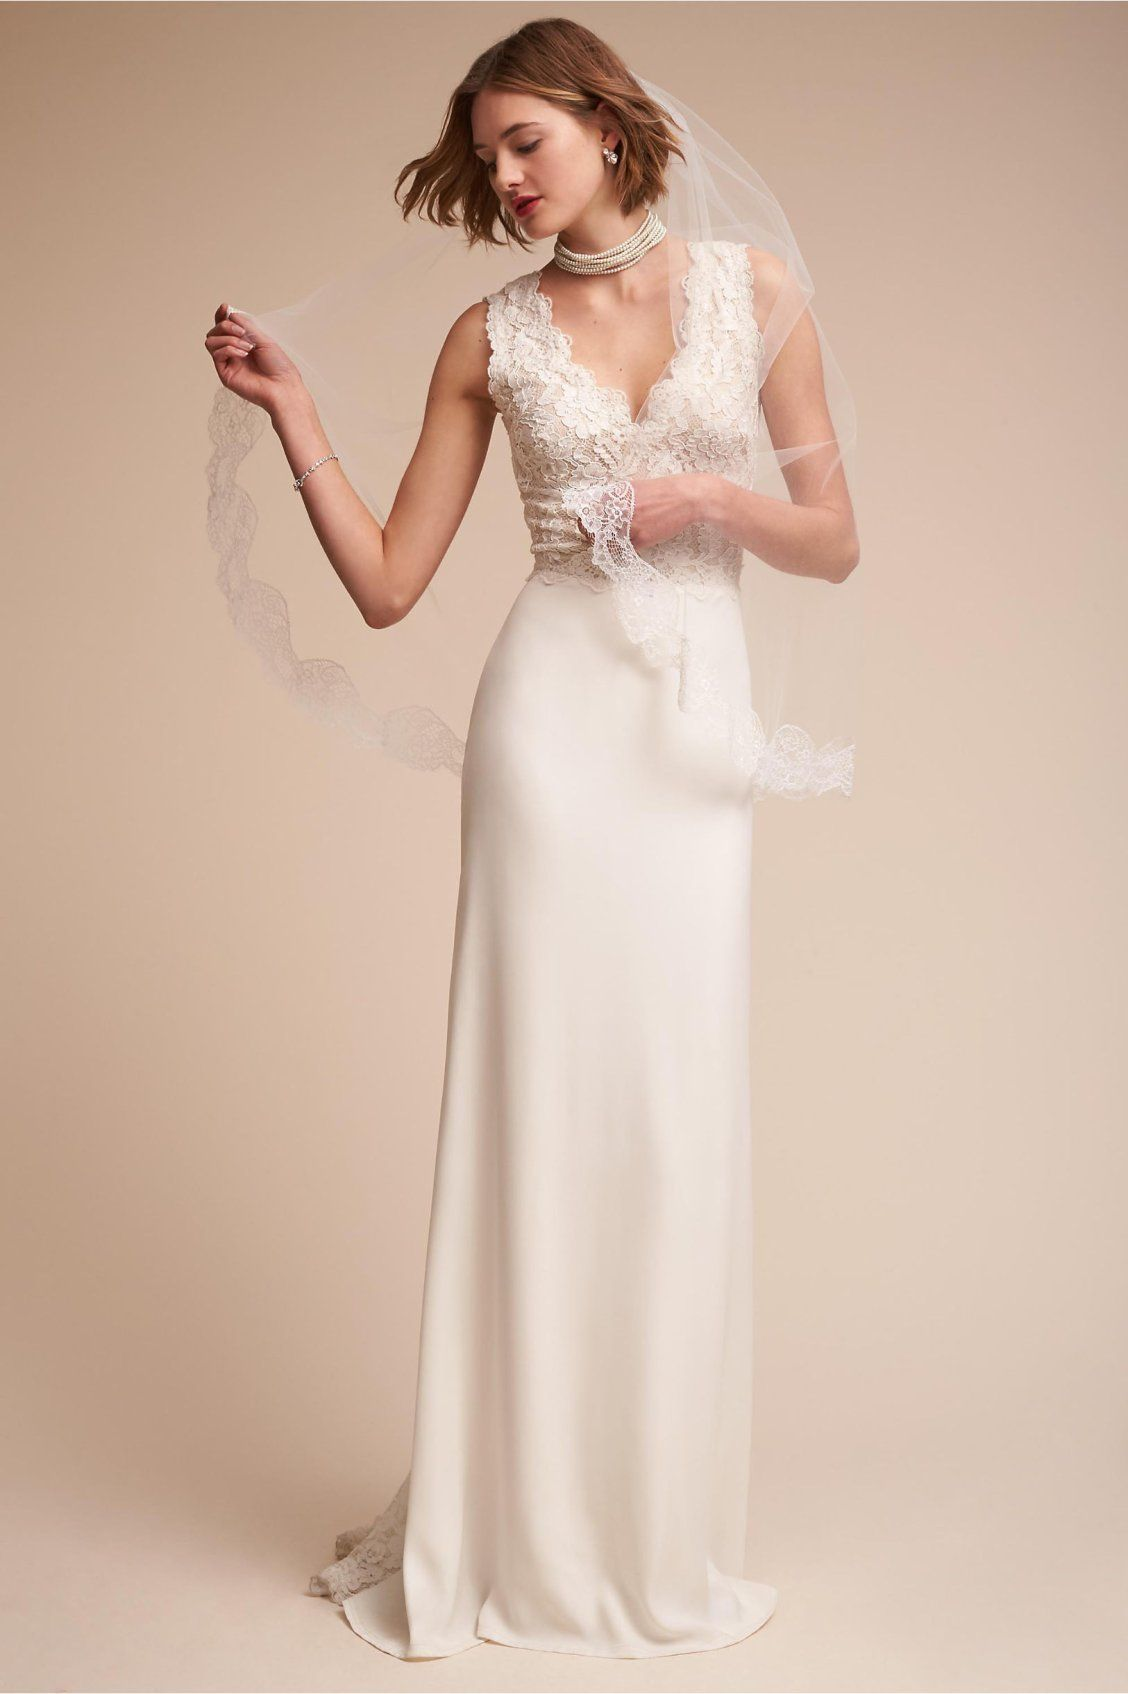 Andora Gown from BHLDN   Wedding Dresses   Pinterest   French ...